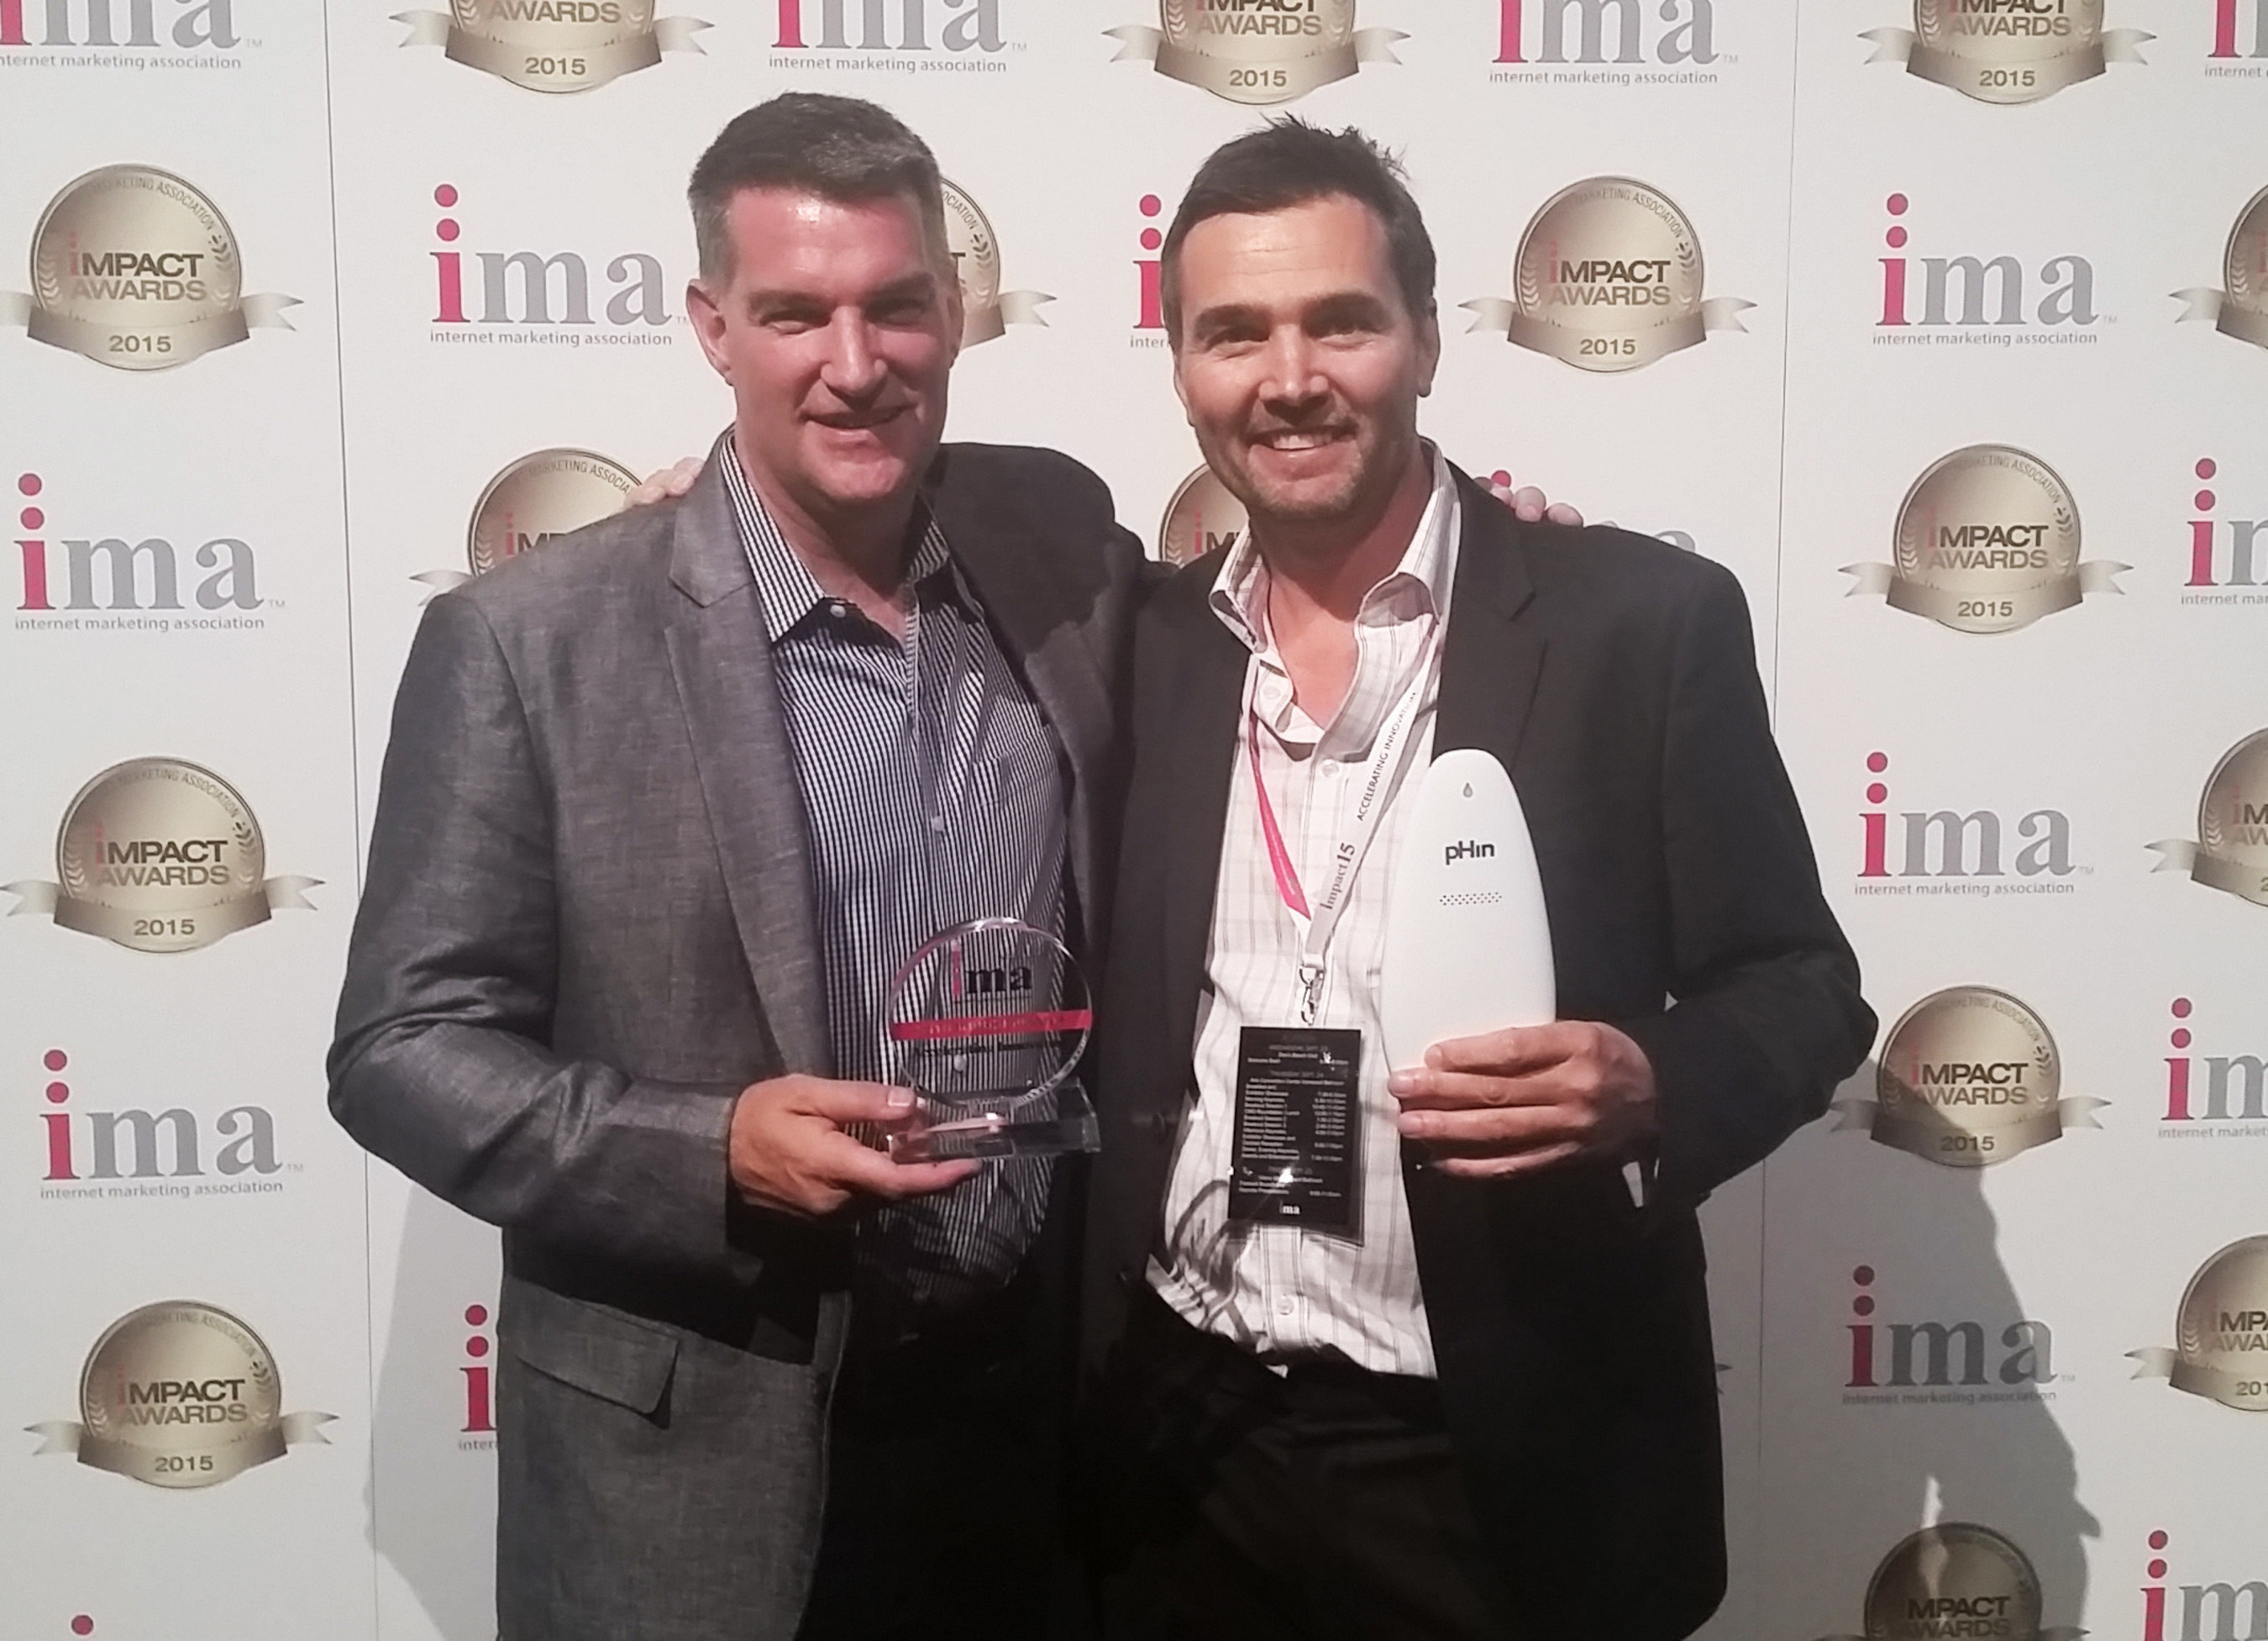 """ConnectedYard Receives """"Innovator of the Year"""" Honors from the Internet Marketing Association (IMA) at IMPACT15 in Las Vegas"""